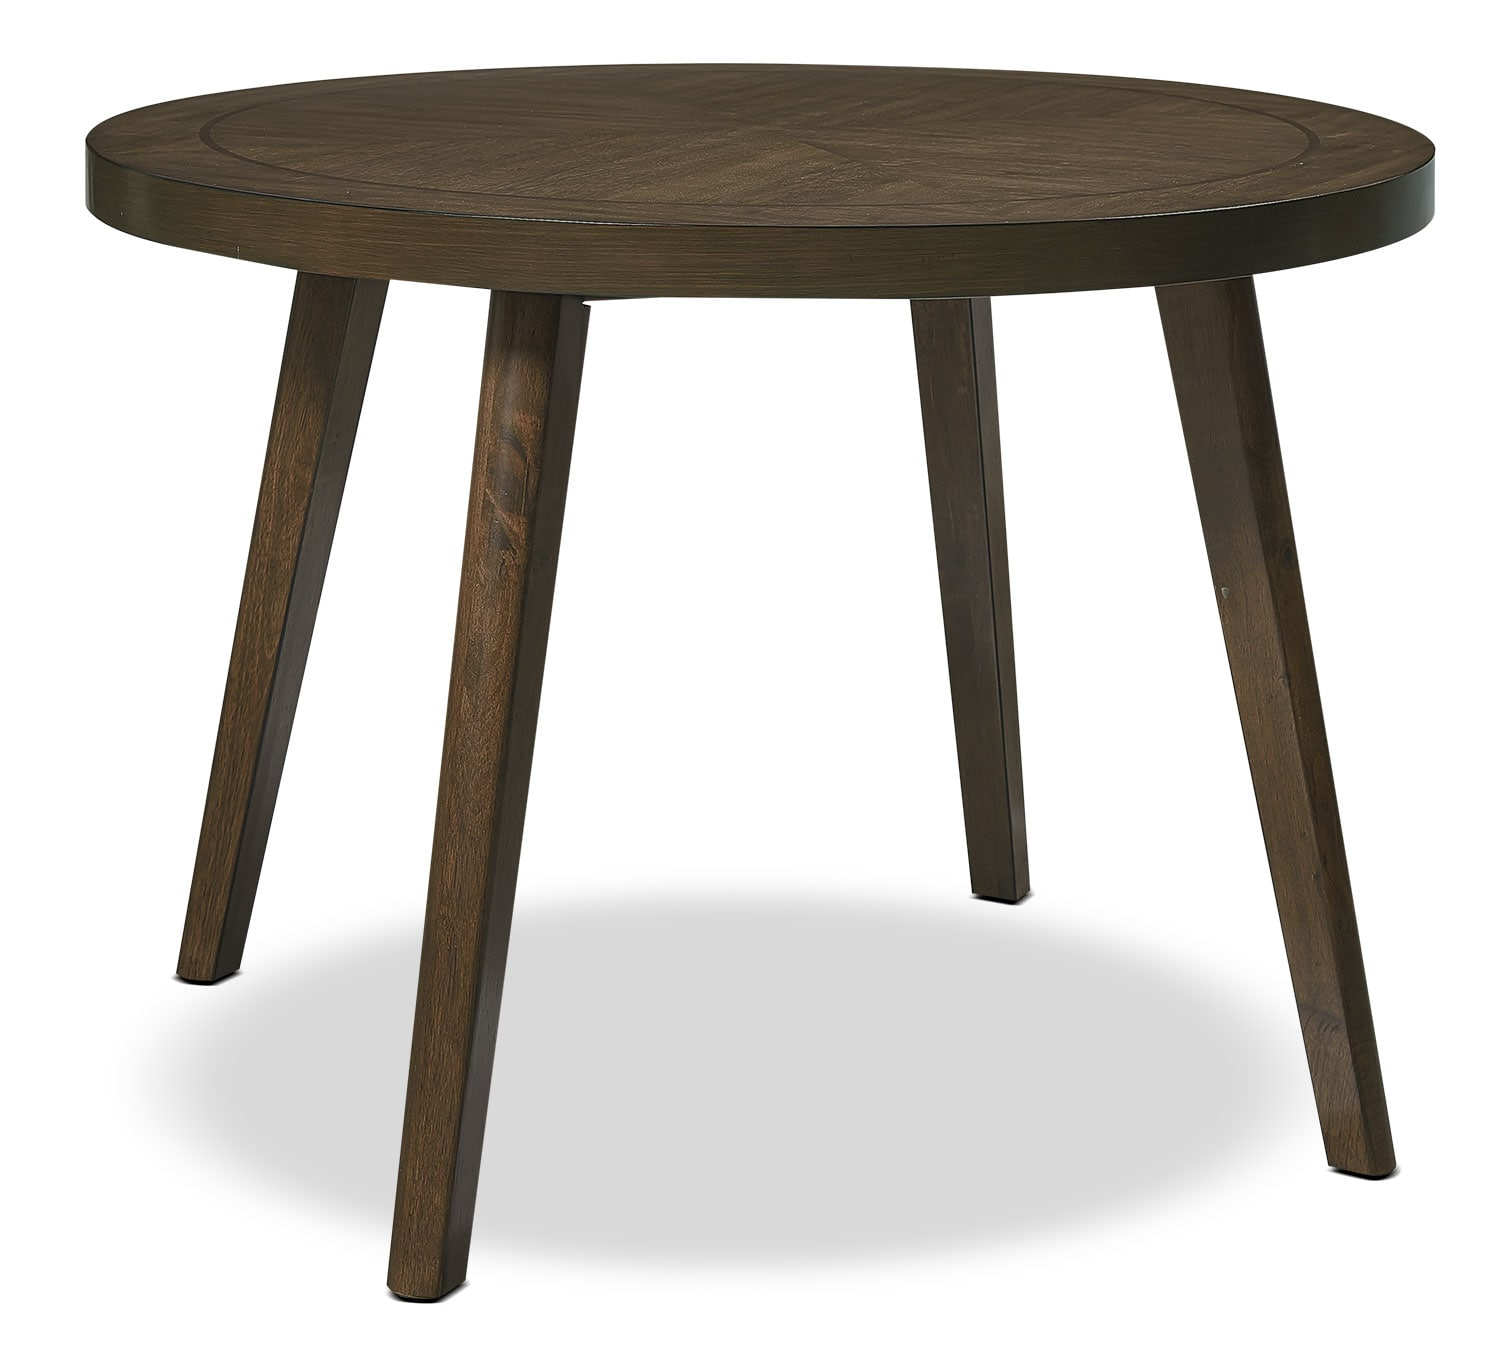 Banff Round Dining Table